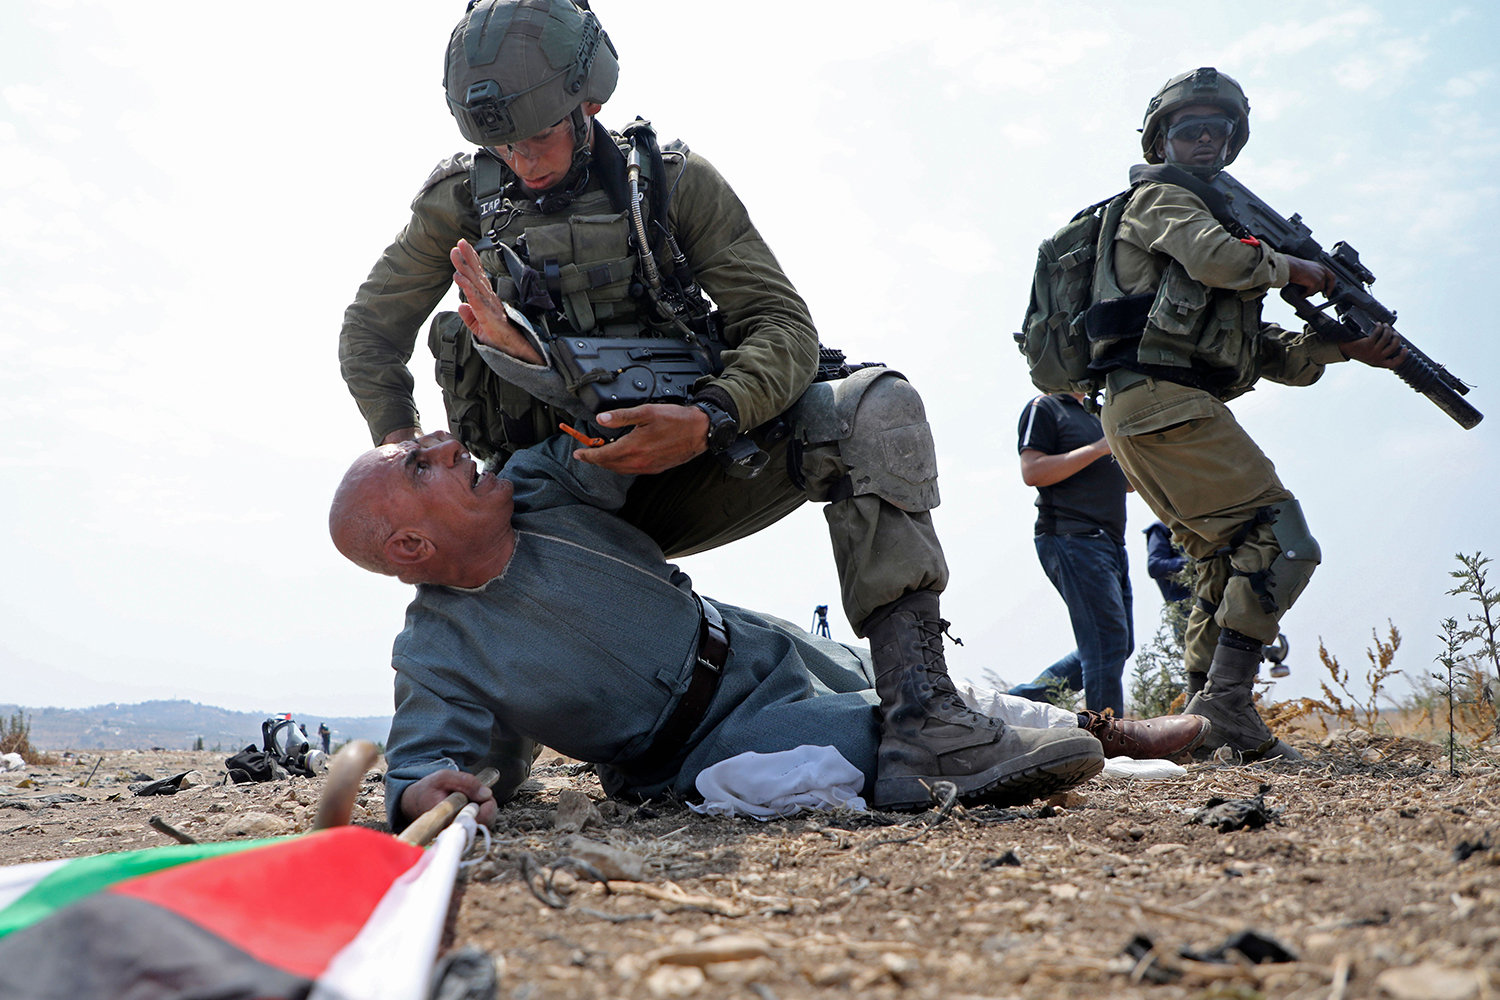 Israeli soldiers detain a Palestinian protester during a demonstration against the Israeli settlement expansion in the village of Jbara, south of Tulkarm, in the occupied West Bank on Sept. 1. JAAFAR ASHTIYEH/AFP via Getty Images